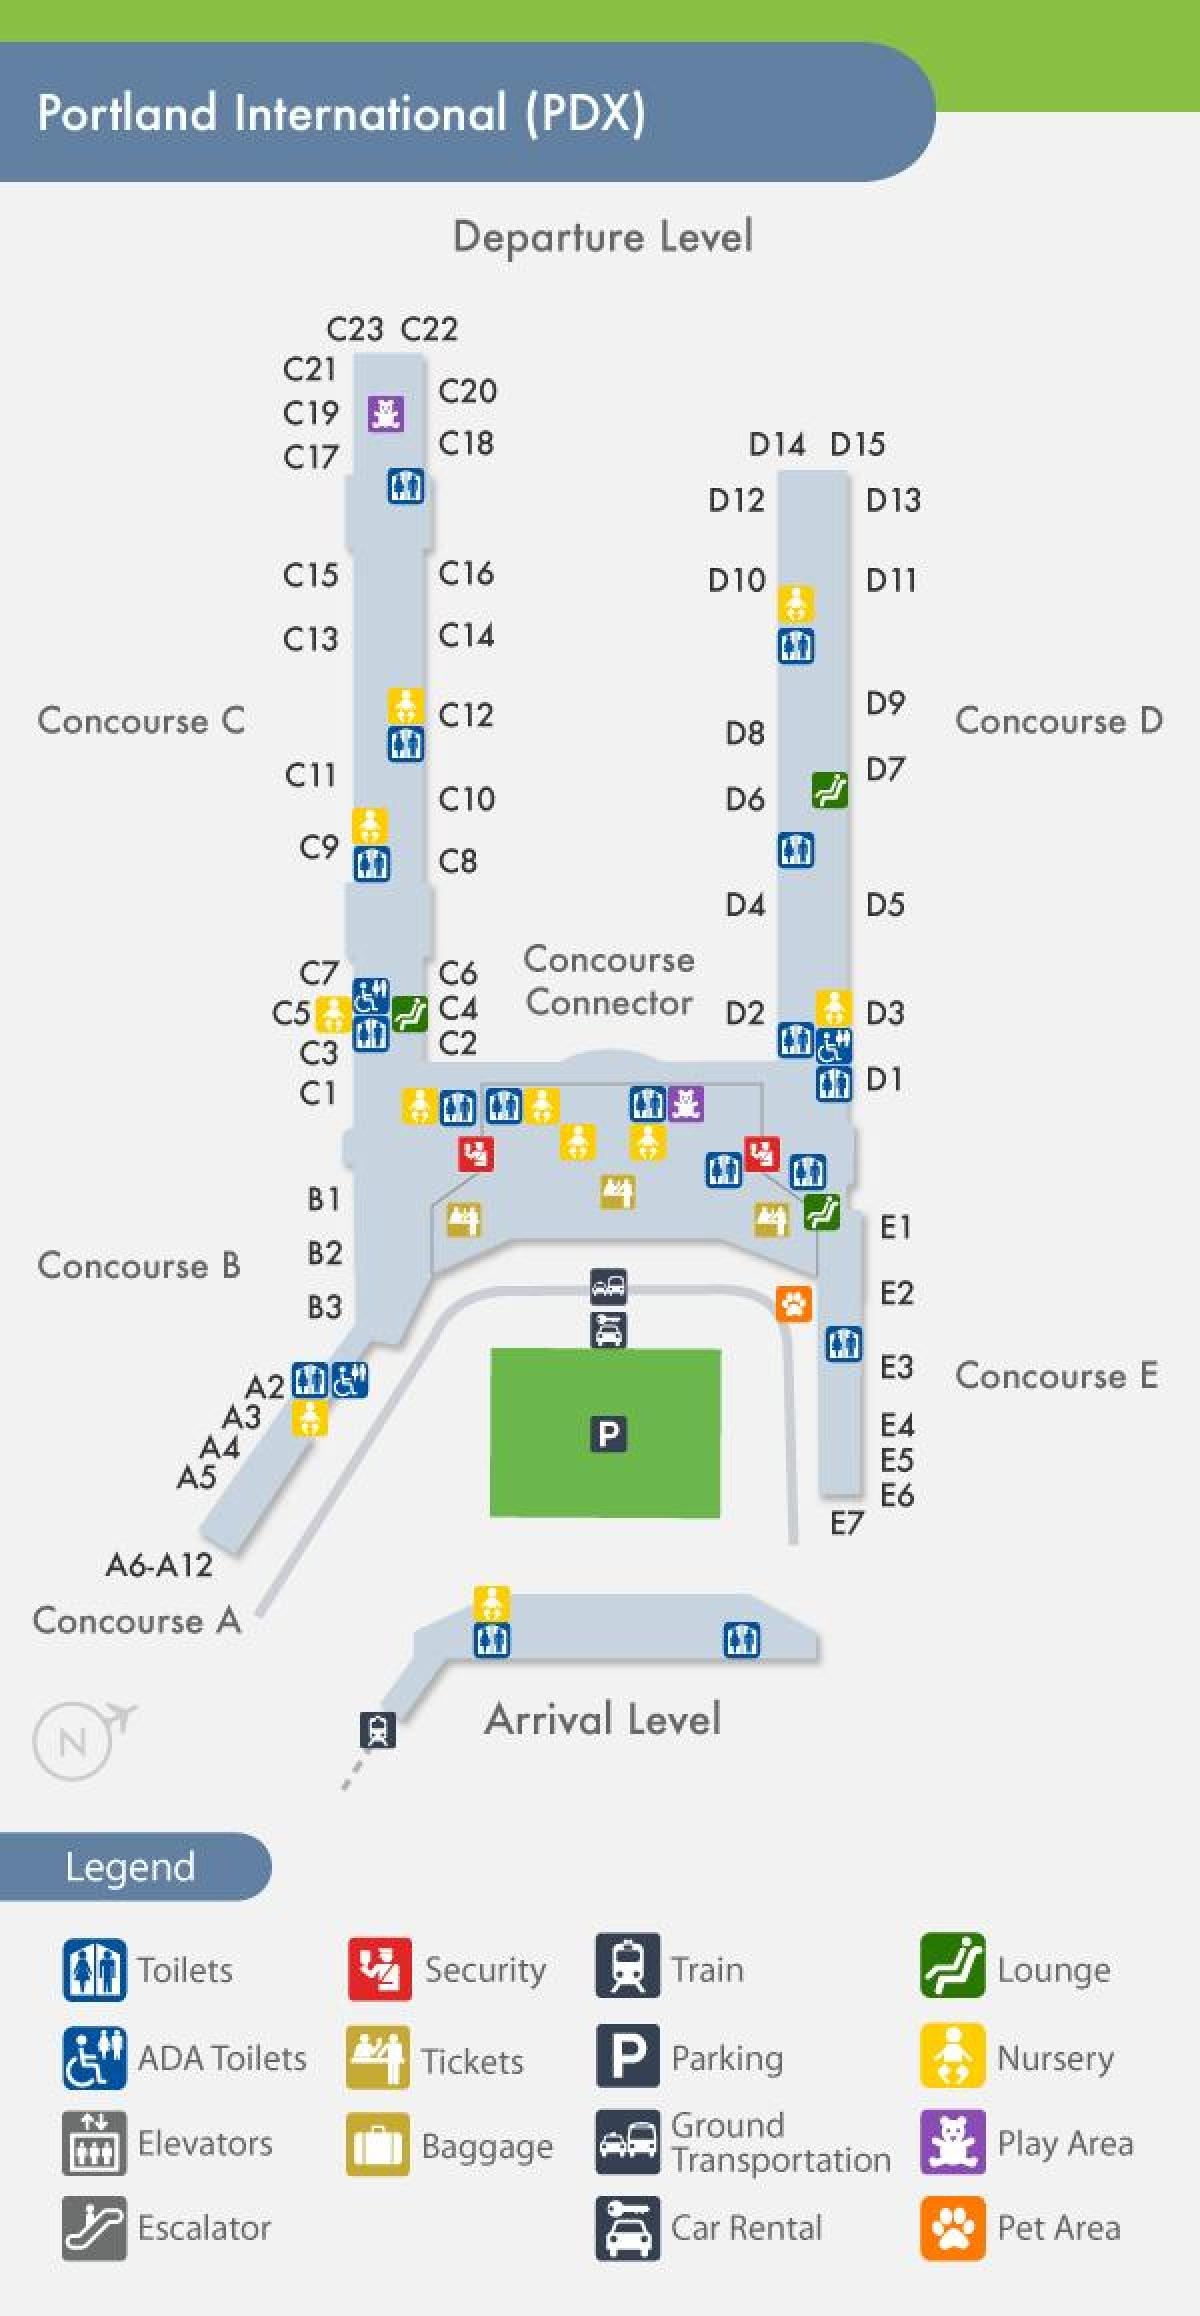 PDX carte de l'aéroport de